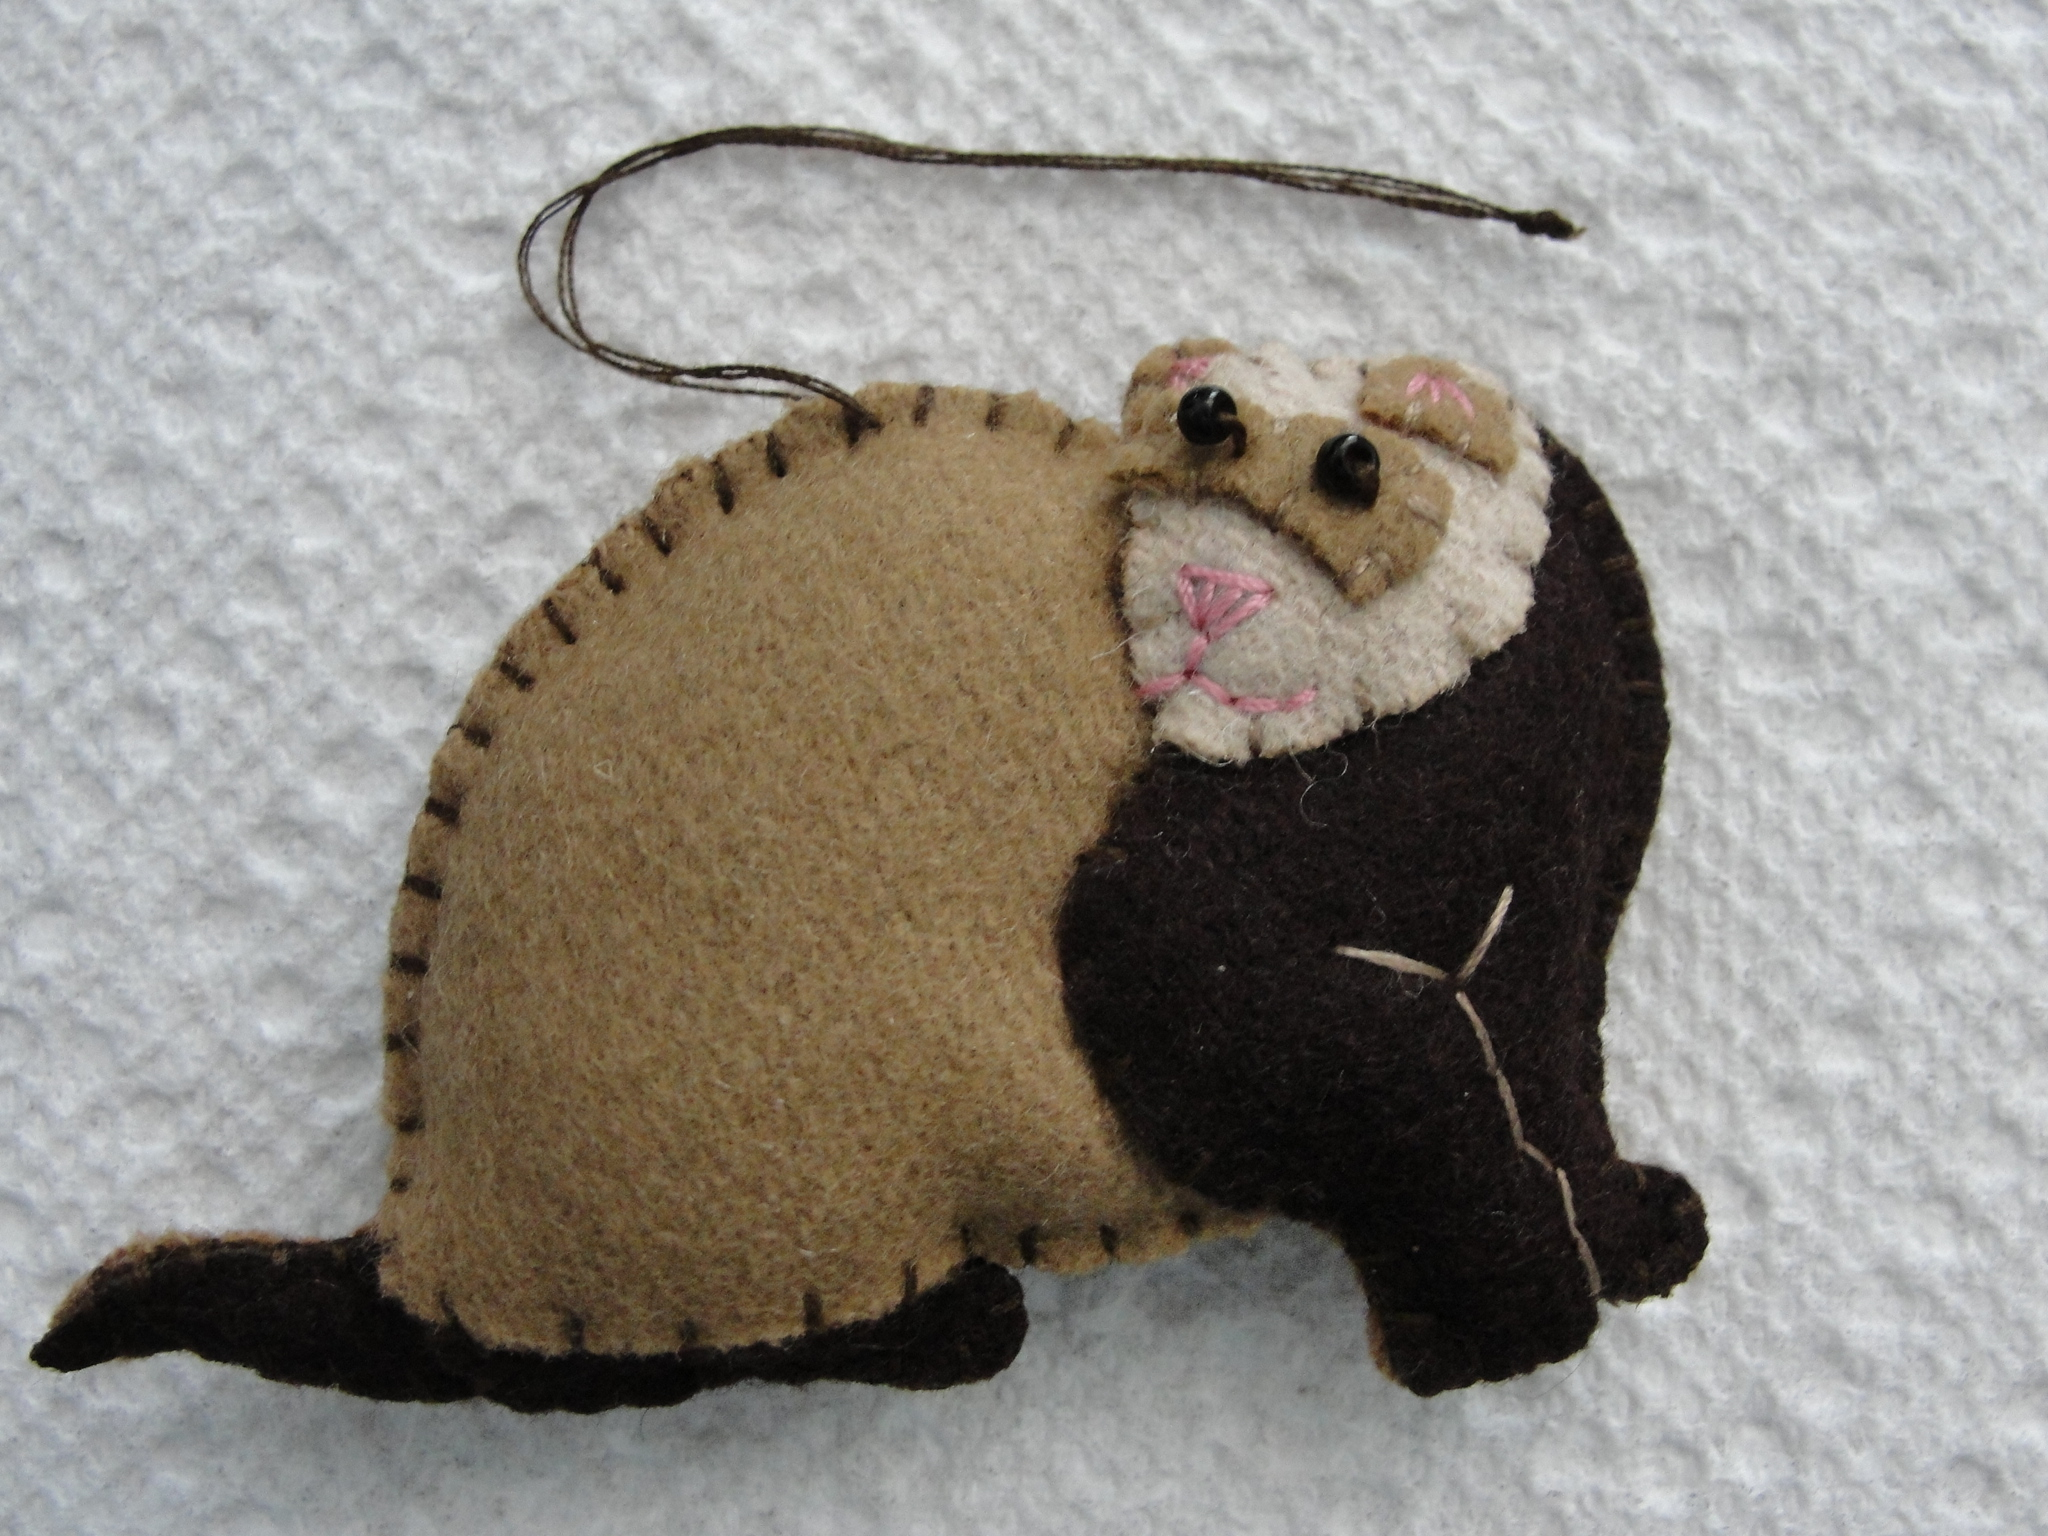 Chocolate Ferret Ornament